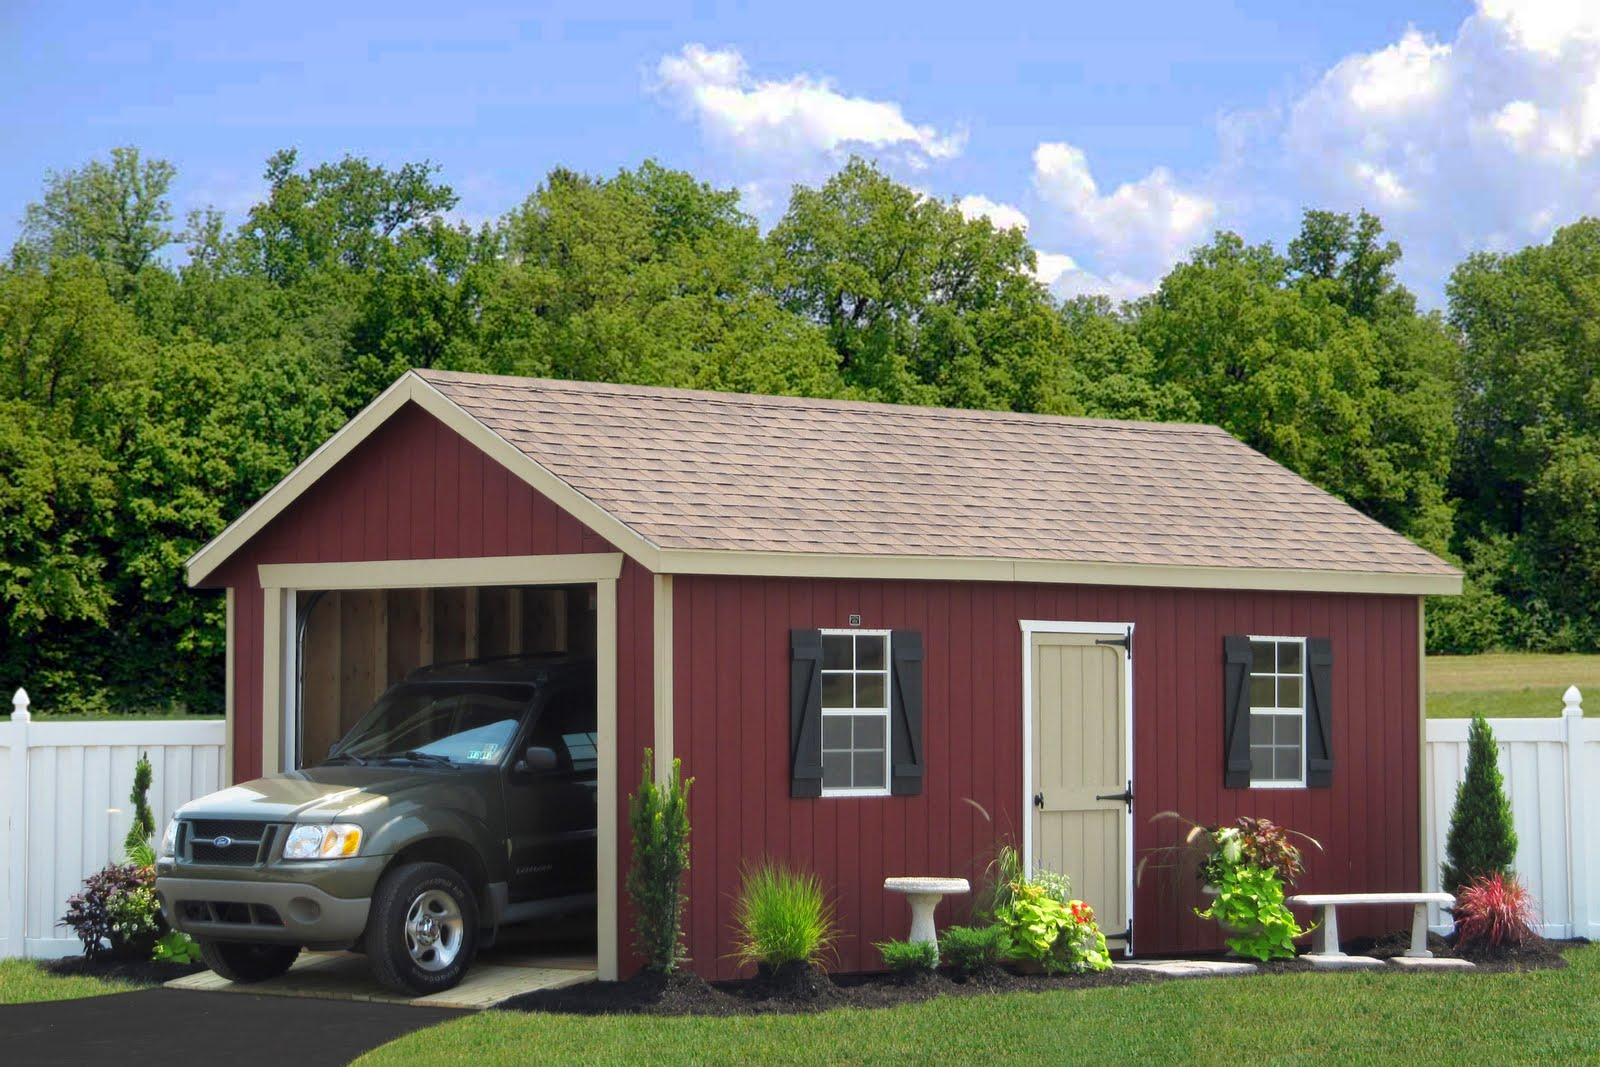 Bels 8x8 wood shed new york for 1 5 car garage plans